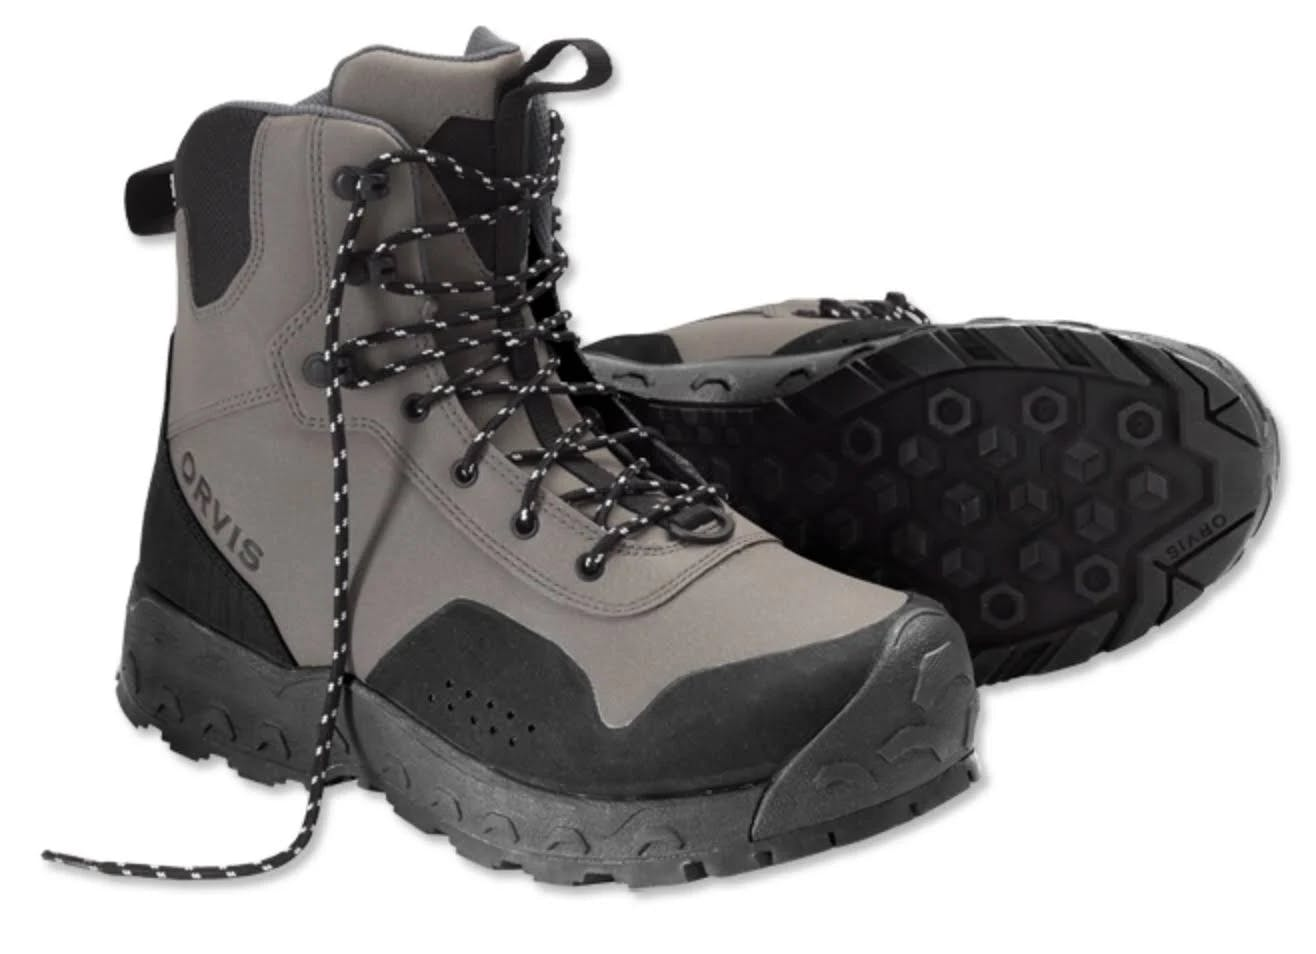 Orvis Men's Clearwater Wading Boots - Rubber Sole - Size 15